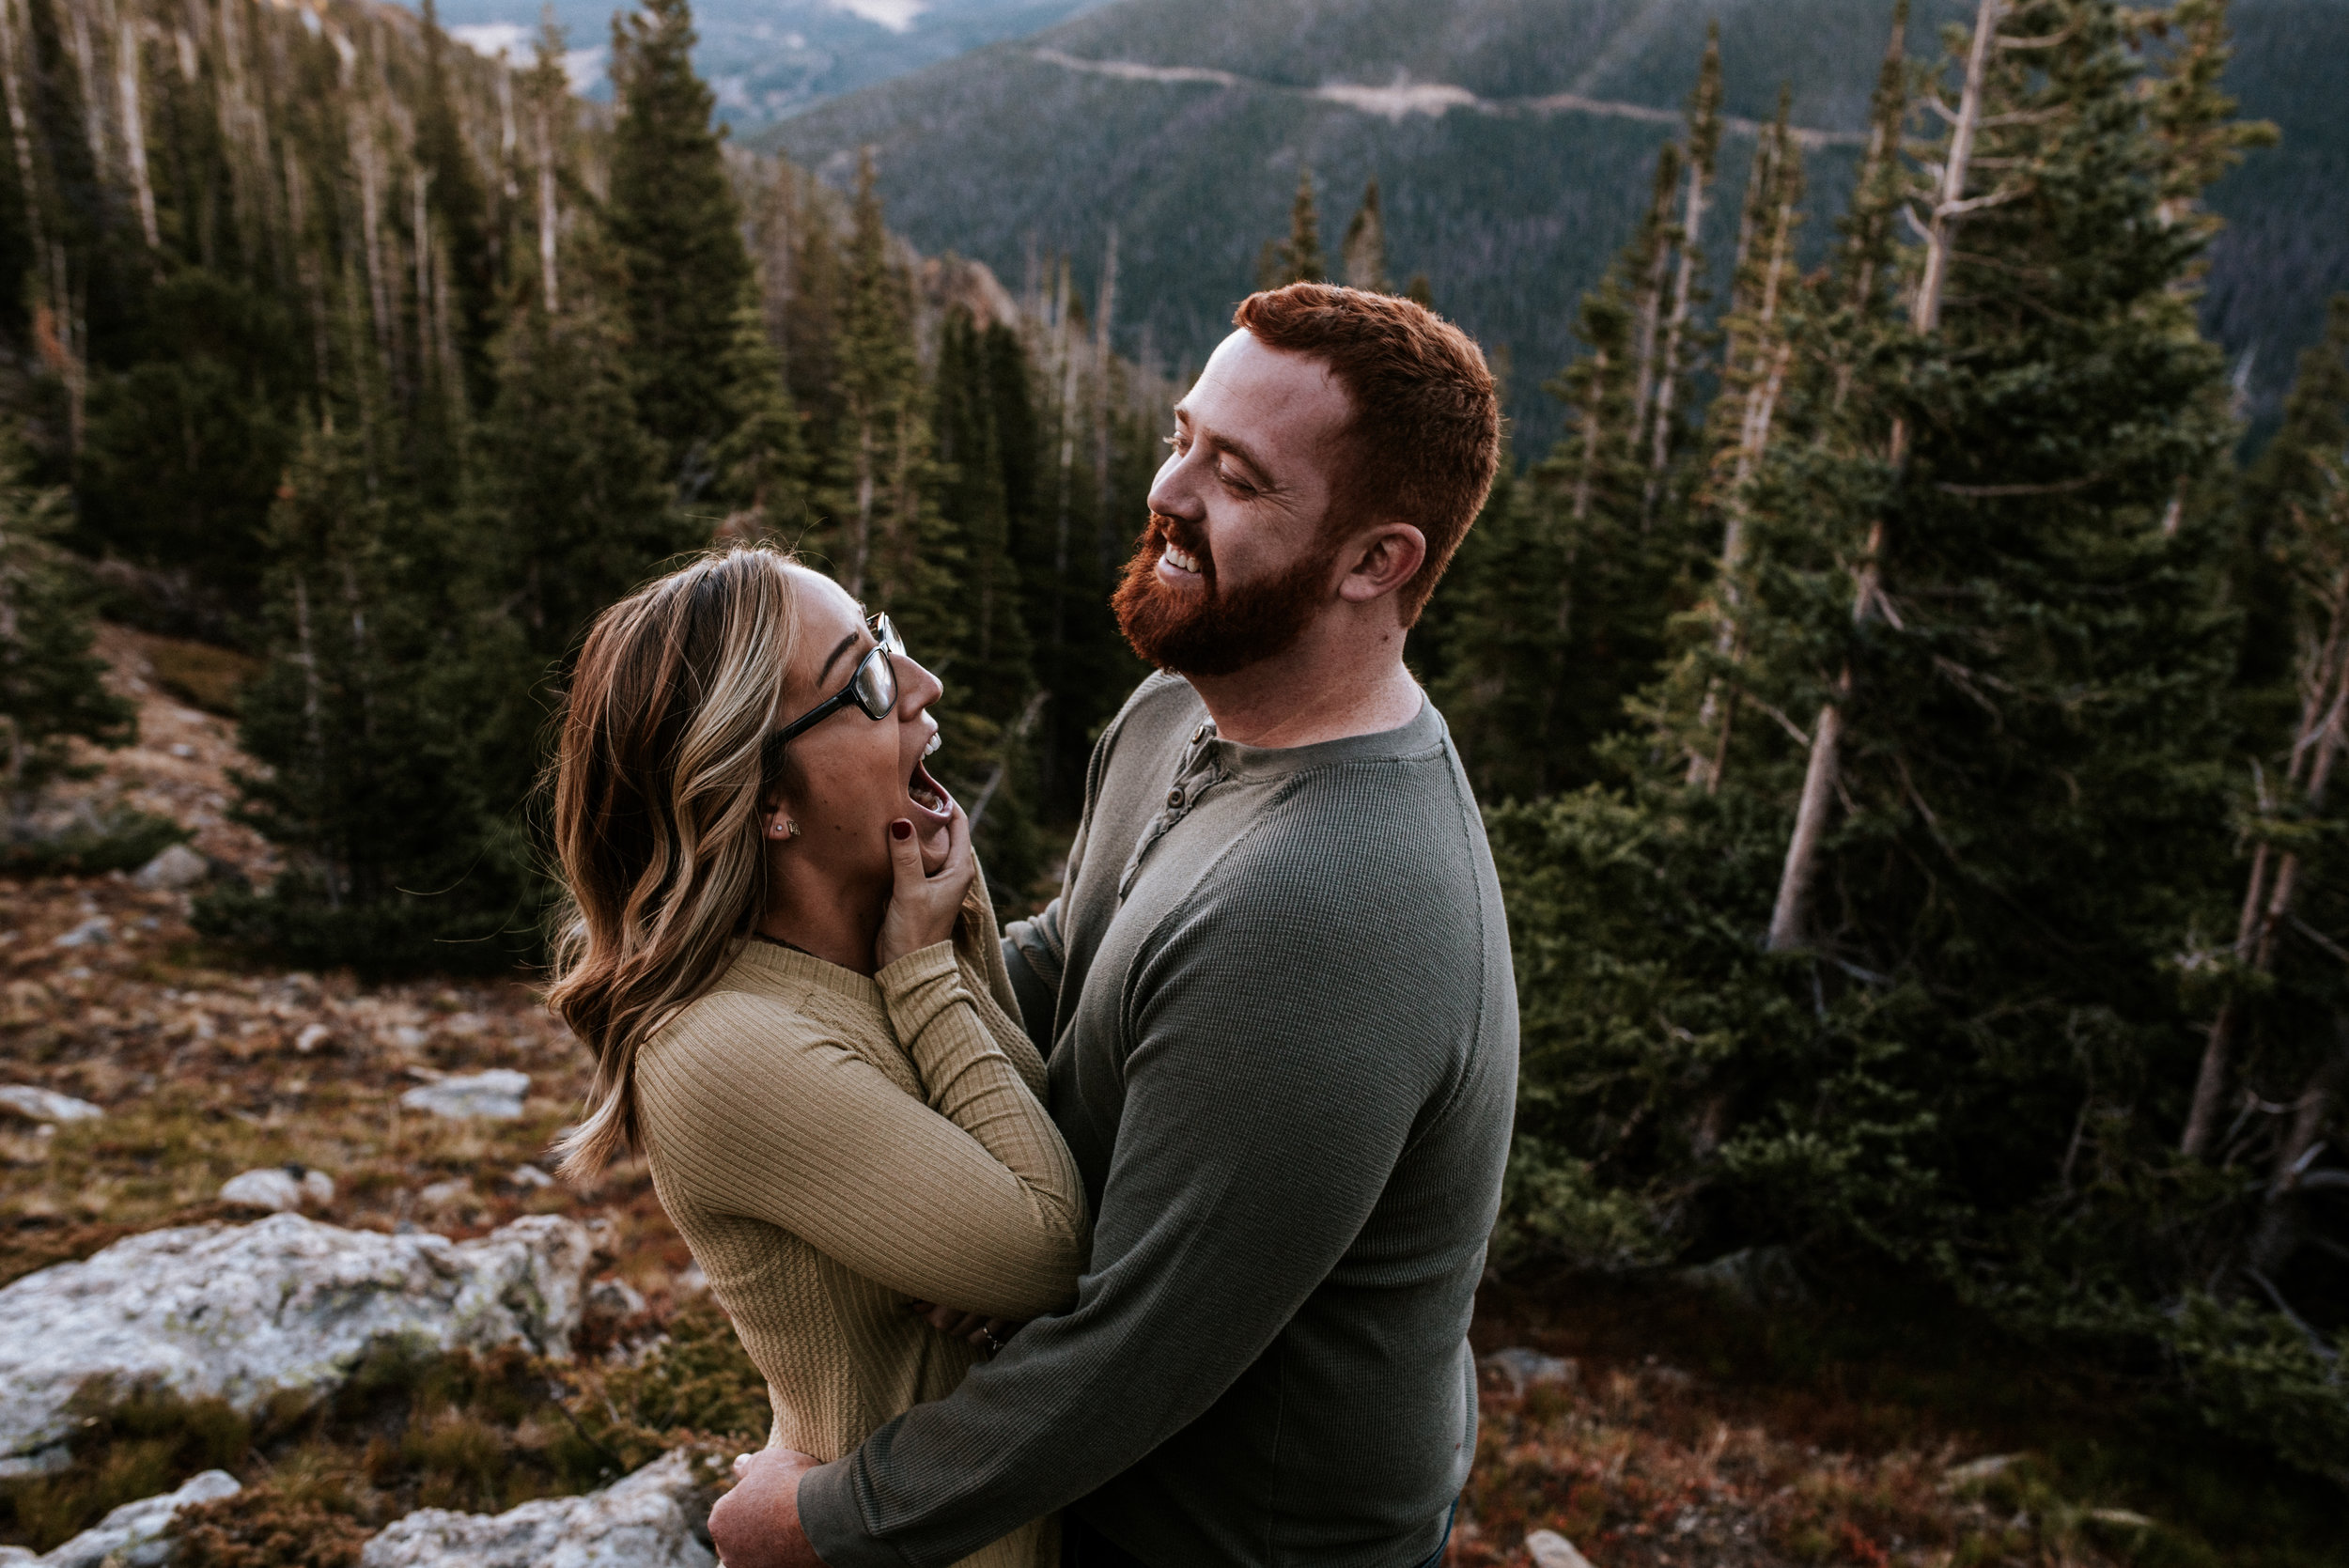 Romantic Windy Rocky Mountain National Park Engagement Photographer-2.jpg